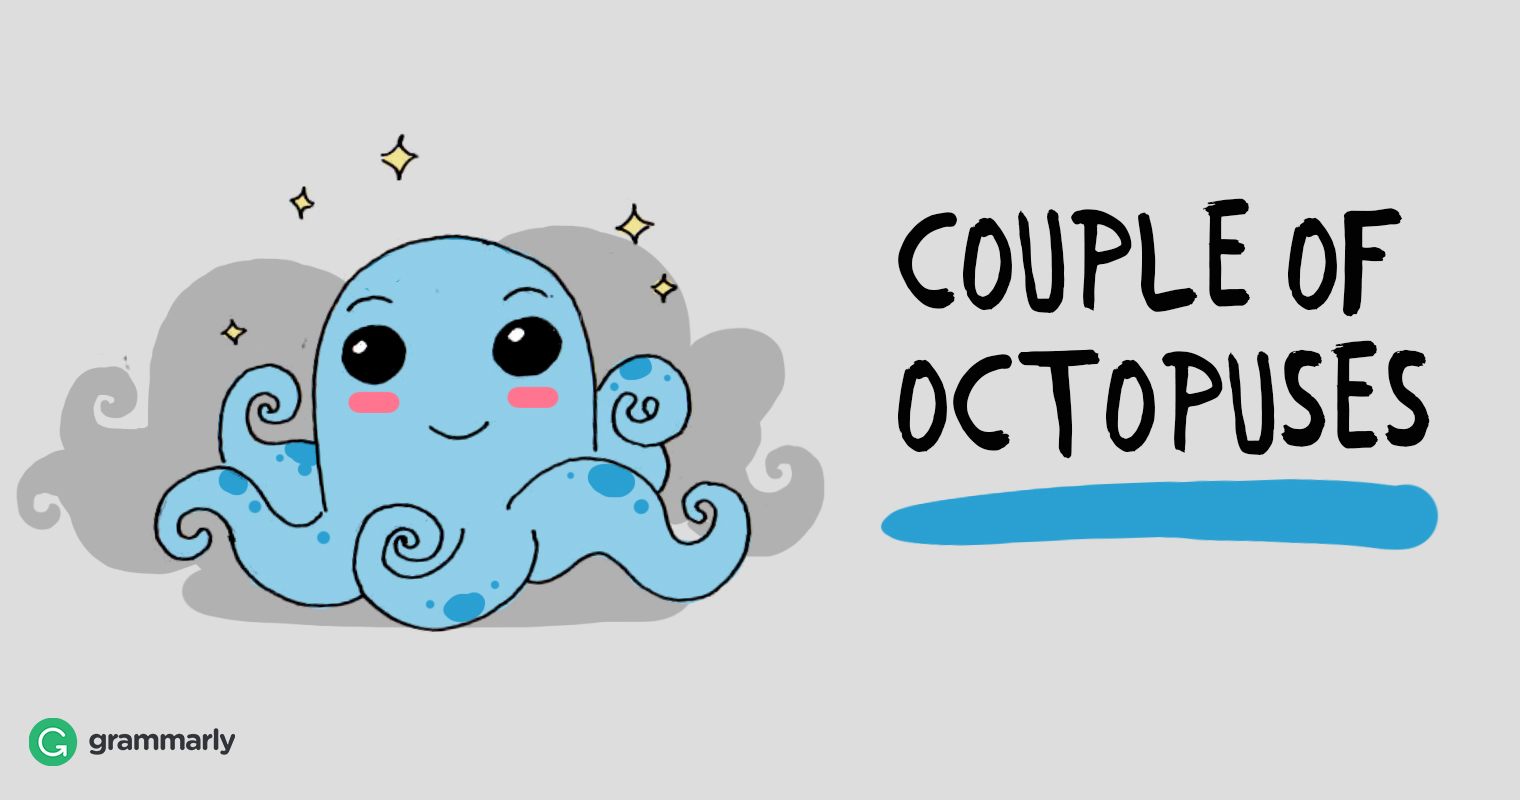 Collective of octopuses is a couple.